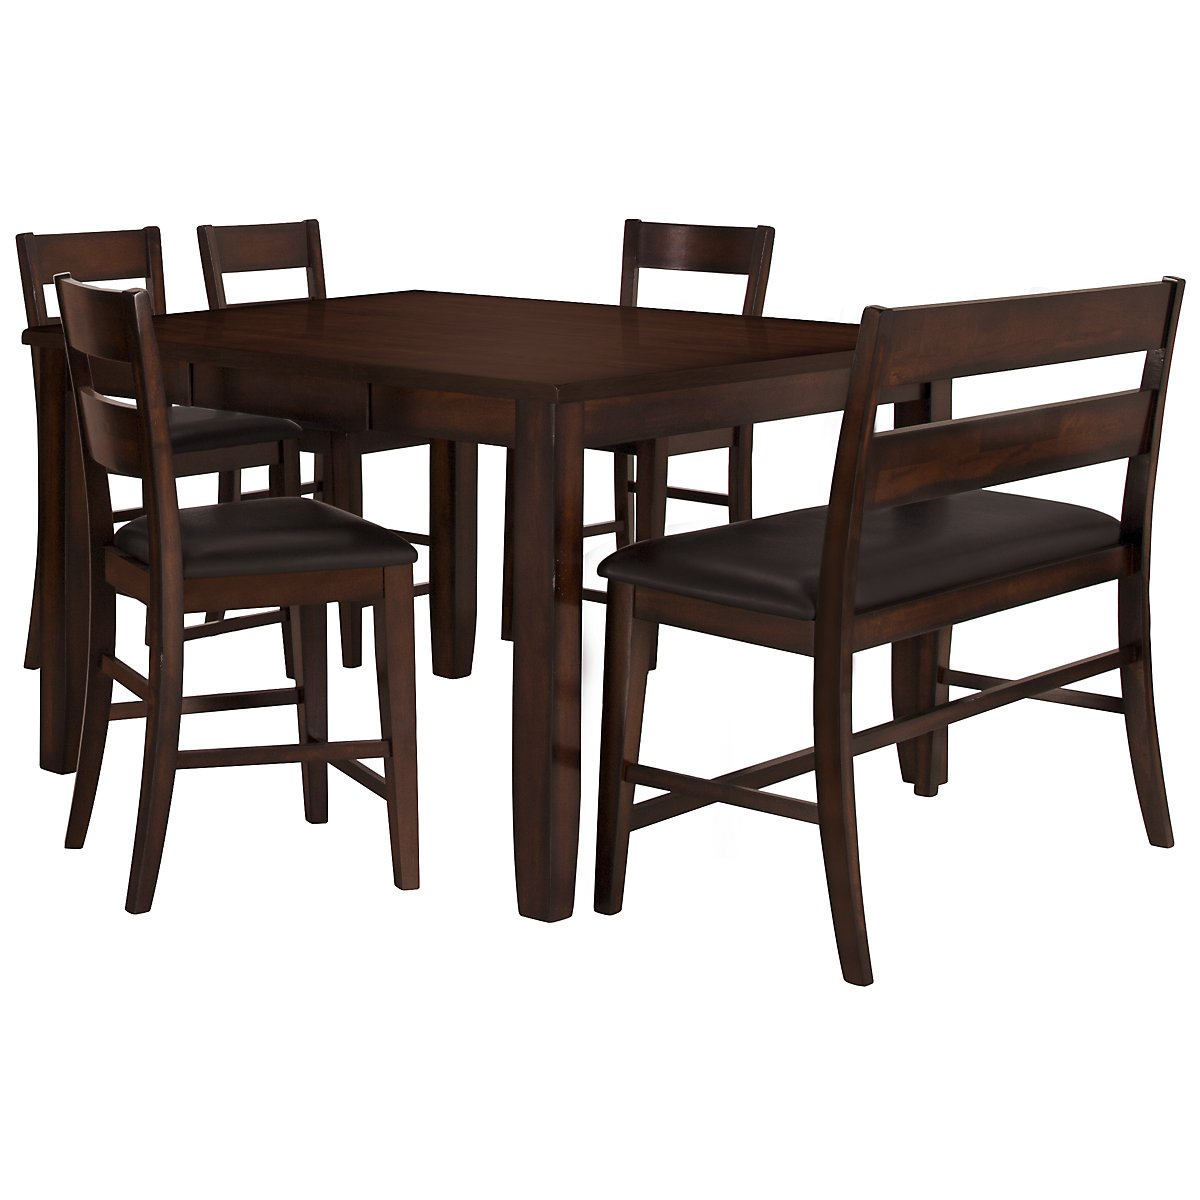 city furniture mango2 dark tone high table 4 barstools high bench